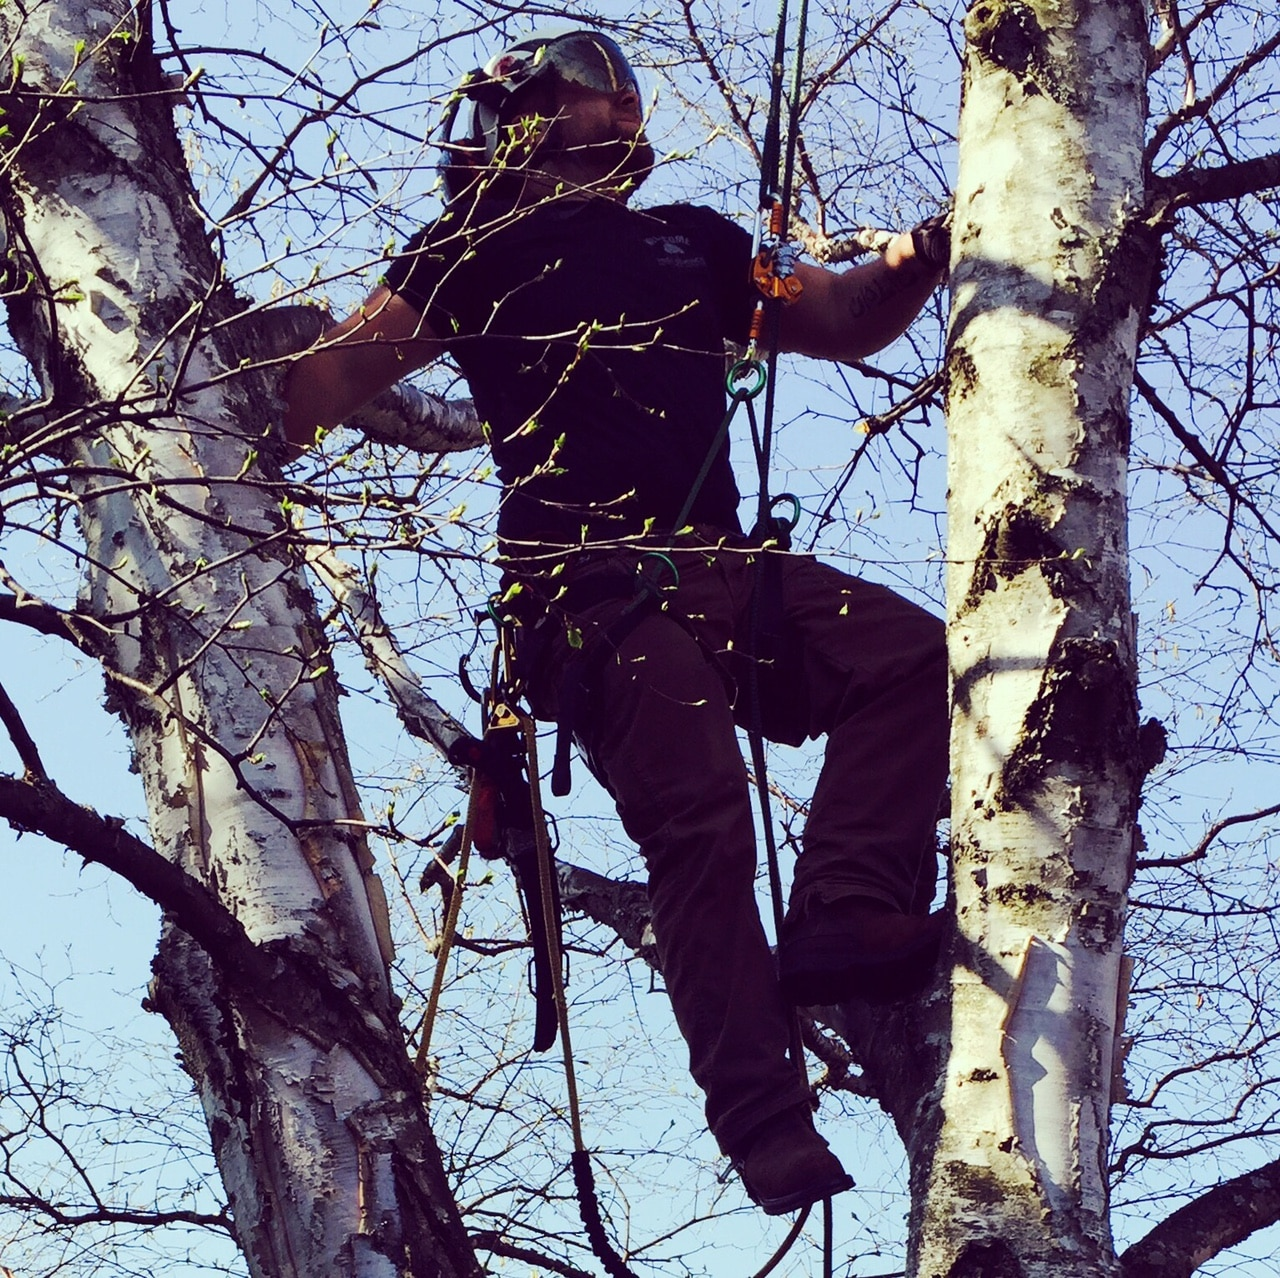 tree service expert high in a birch tree without damaging it